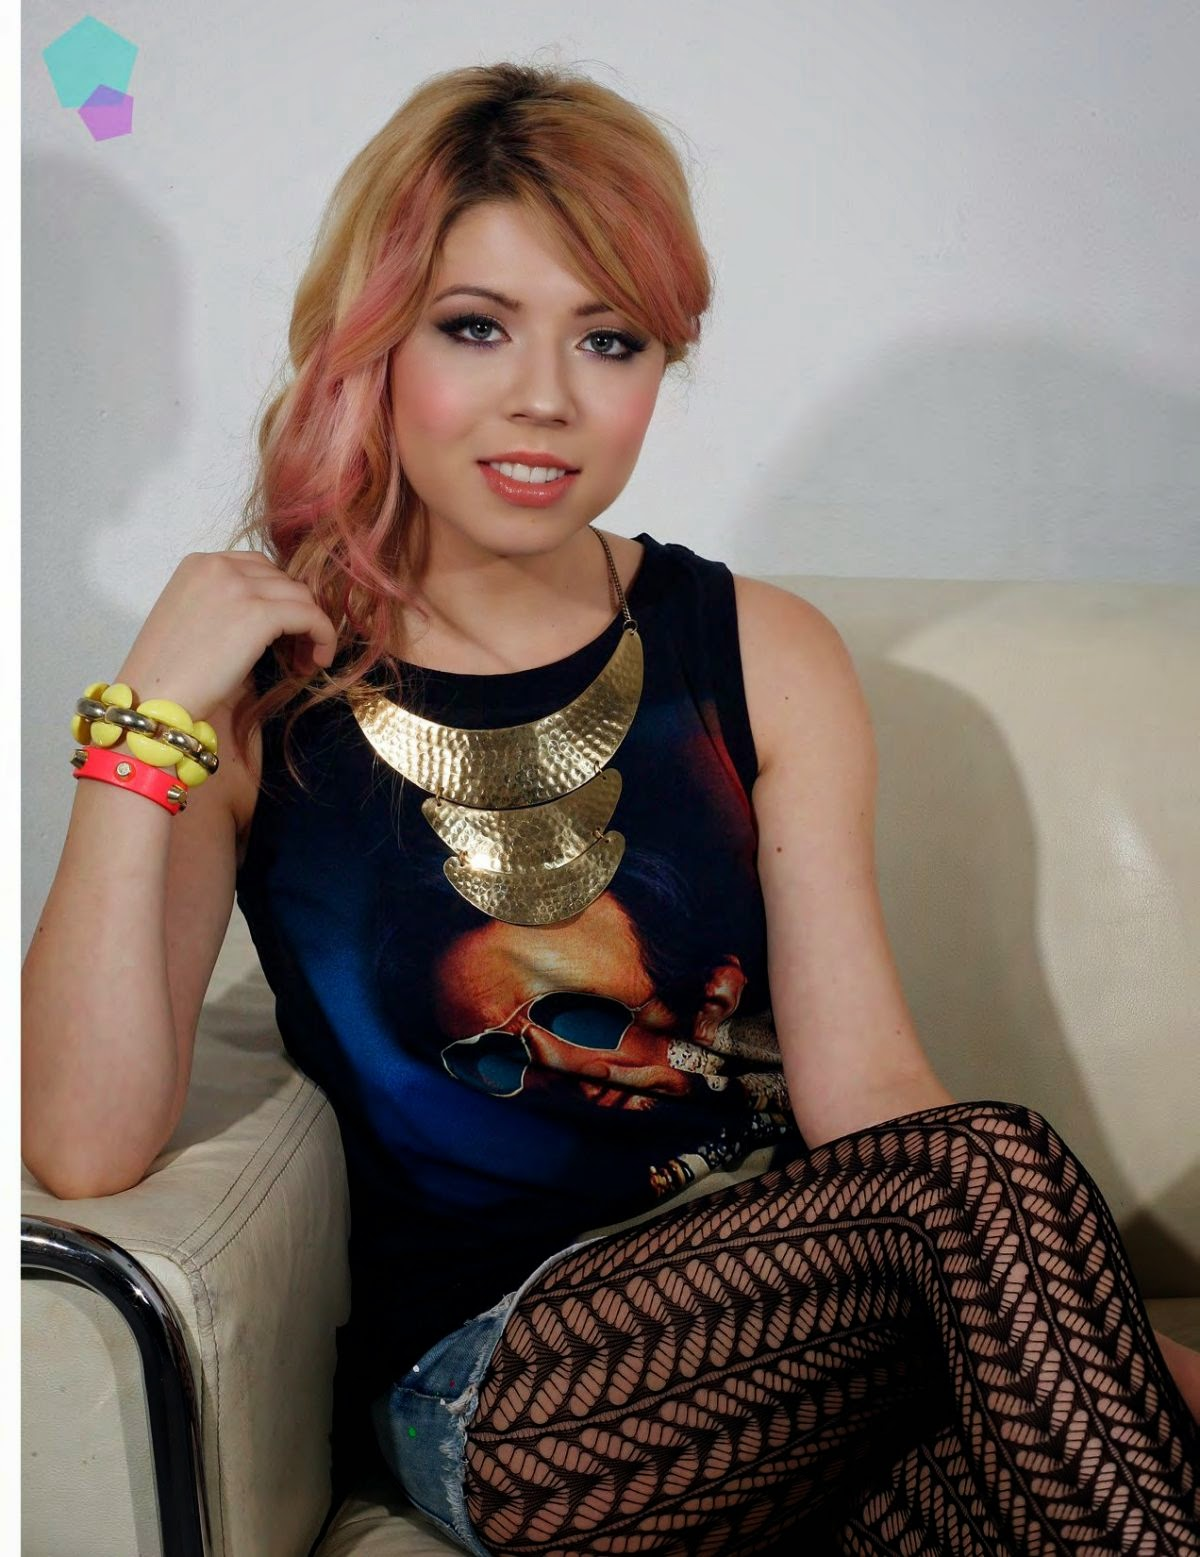 Hot Jennette McCurdy nude photos 2019